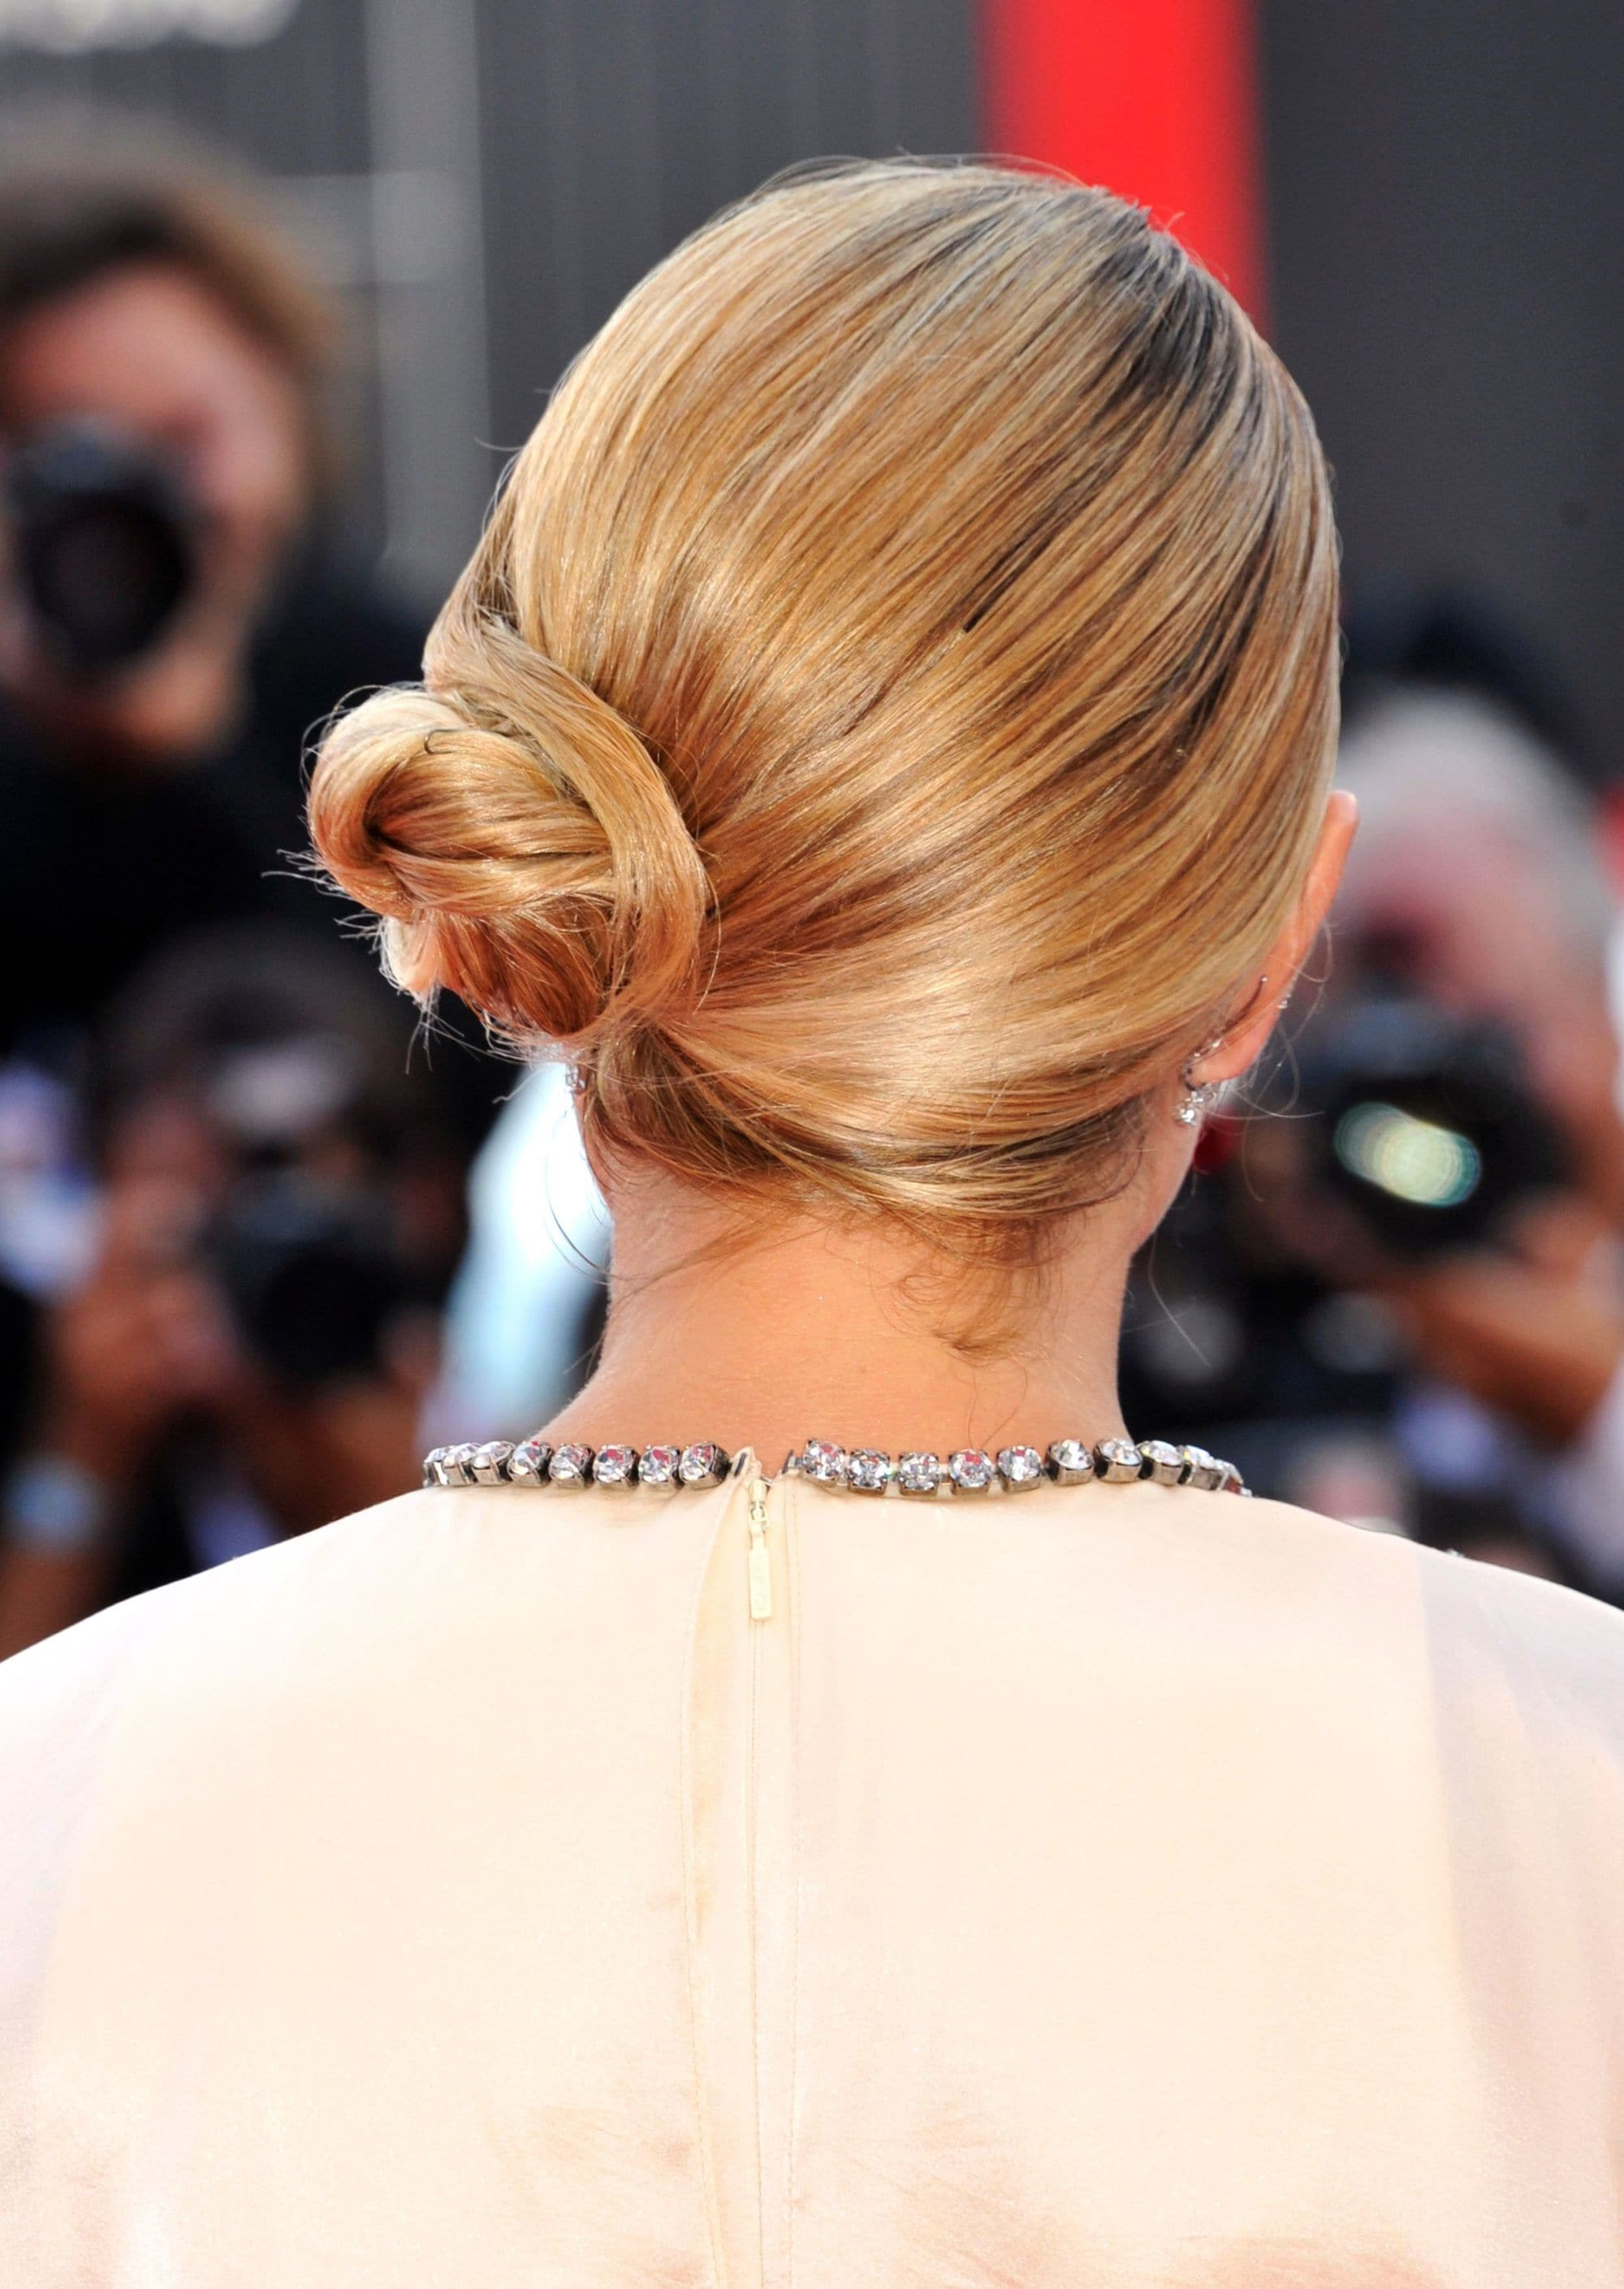 Woman with golden blonde sleek side bun